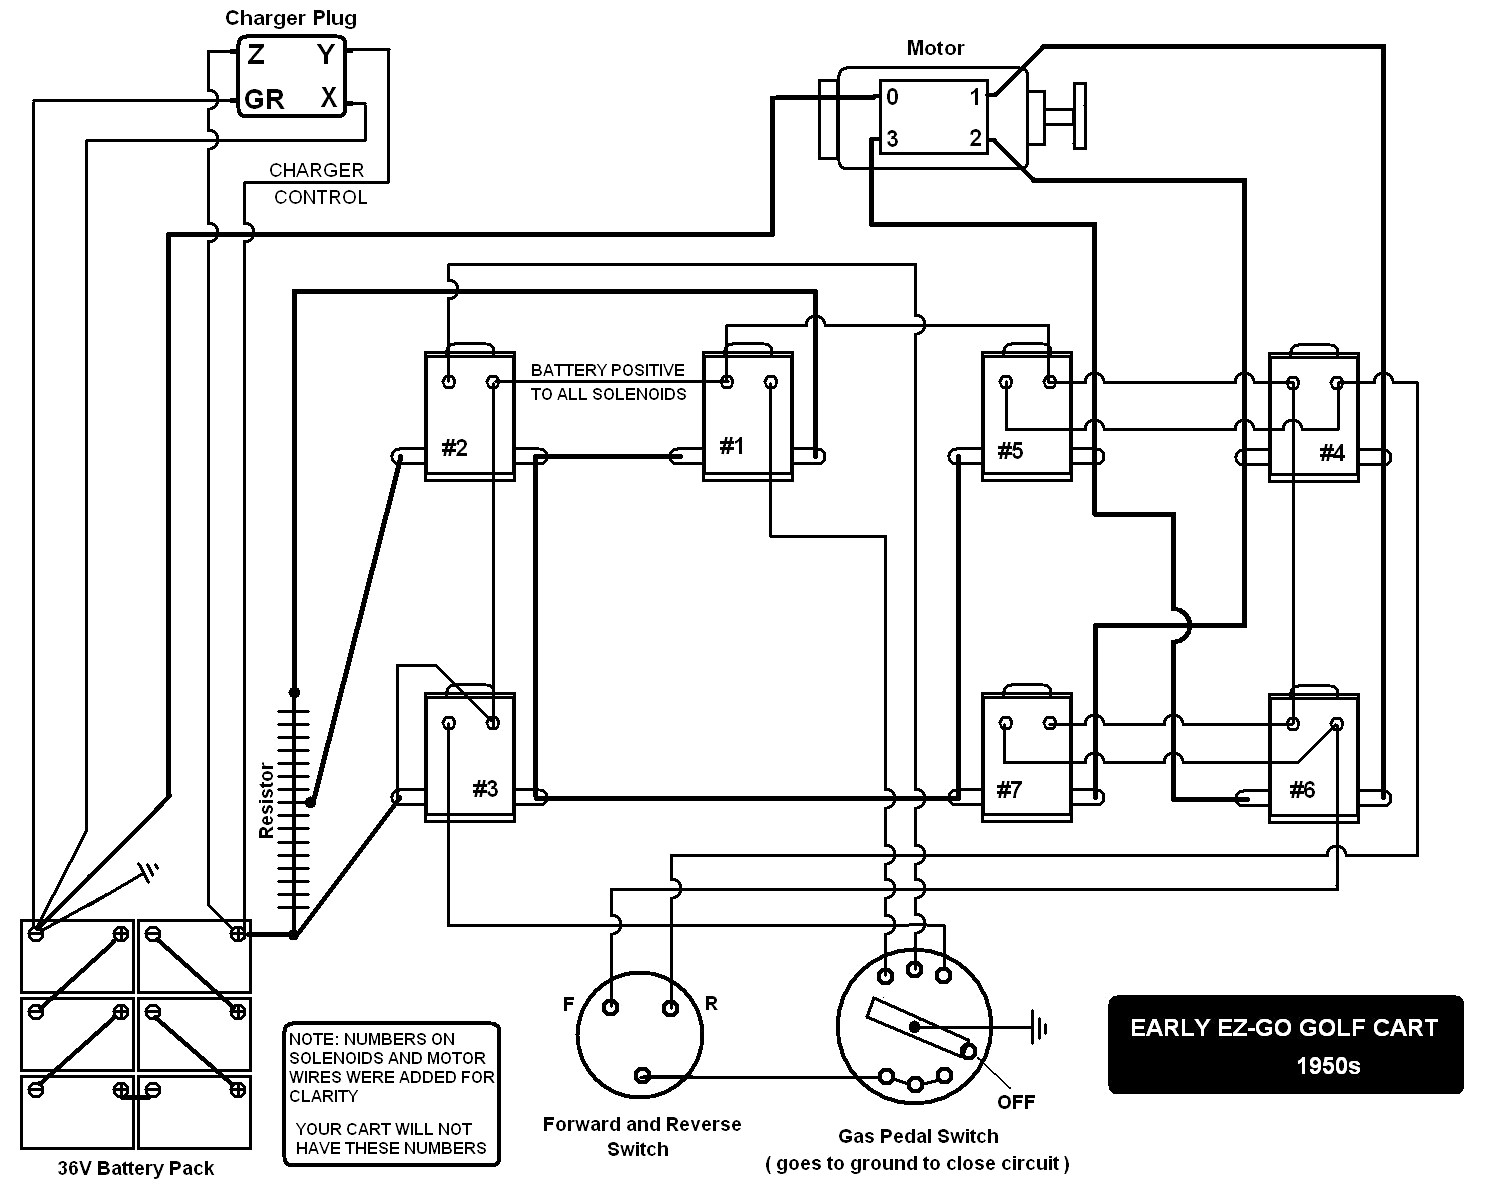 hight resolution of ezgo forward reverse switch wiring diagram